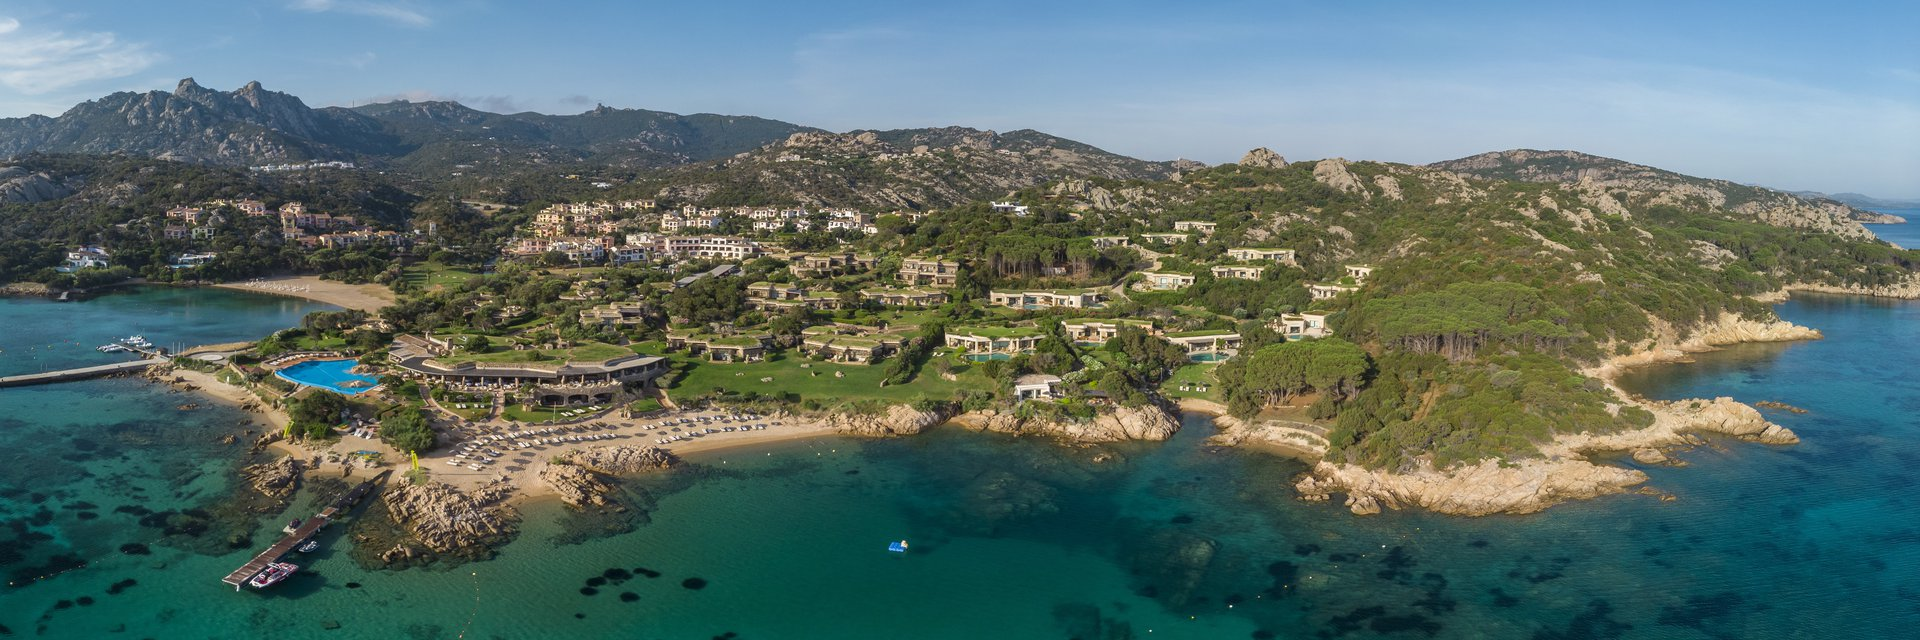 Hotel Pitrizza Aerial view